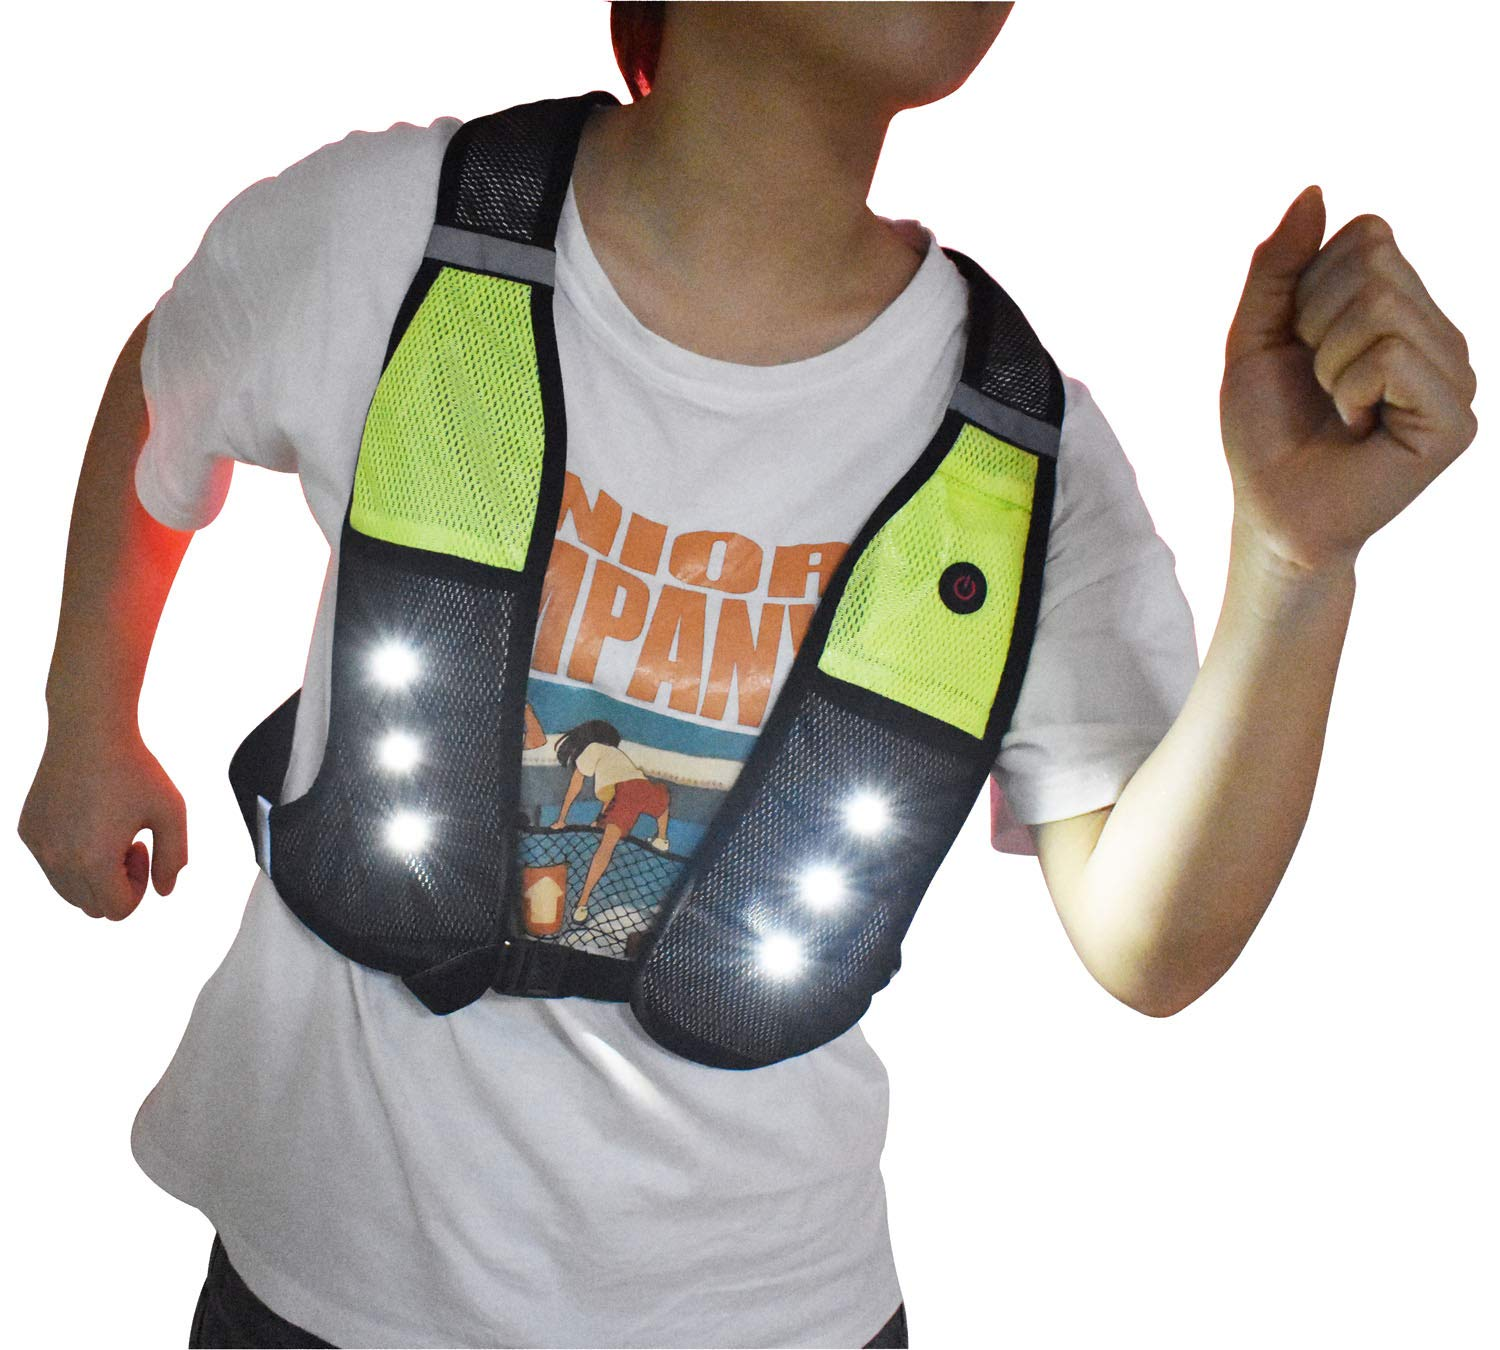 Reflective Running Vest with LED Lights USB Rechargeable Safety Gear Vest, Adjustable Waist Phone Pockets, High Visibility Light Up Flashing Vest for Men Women Kid Runner Walker Cyclist(Large/X-Large)